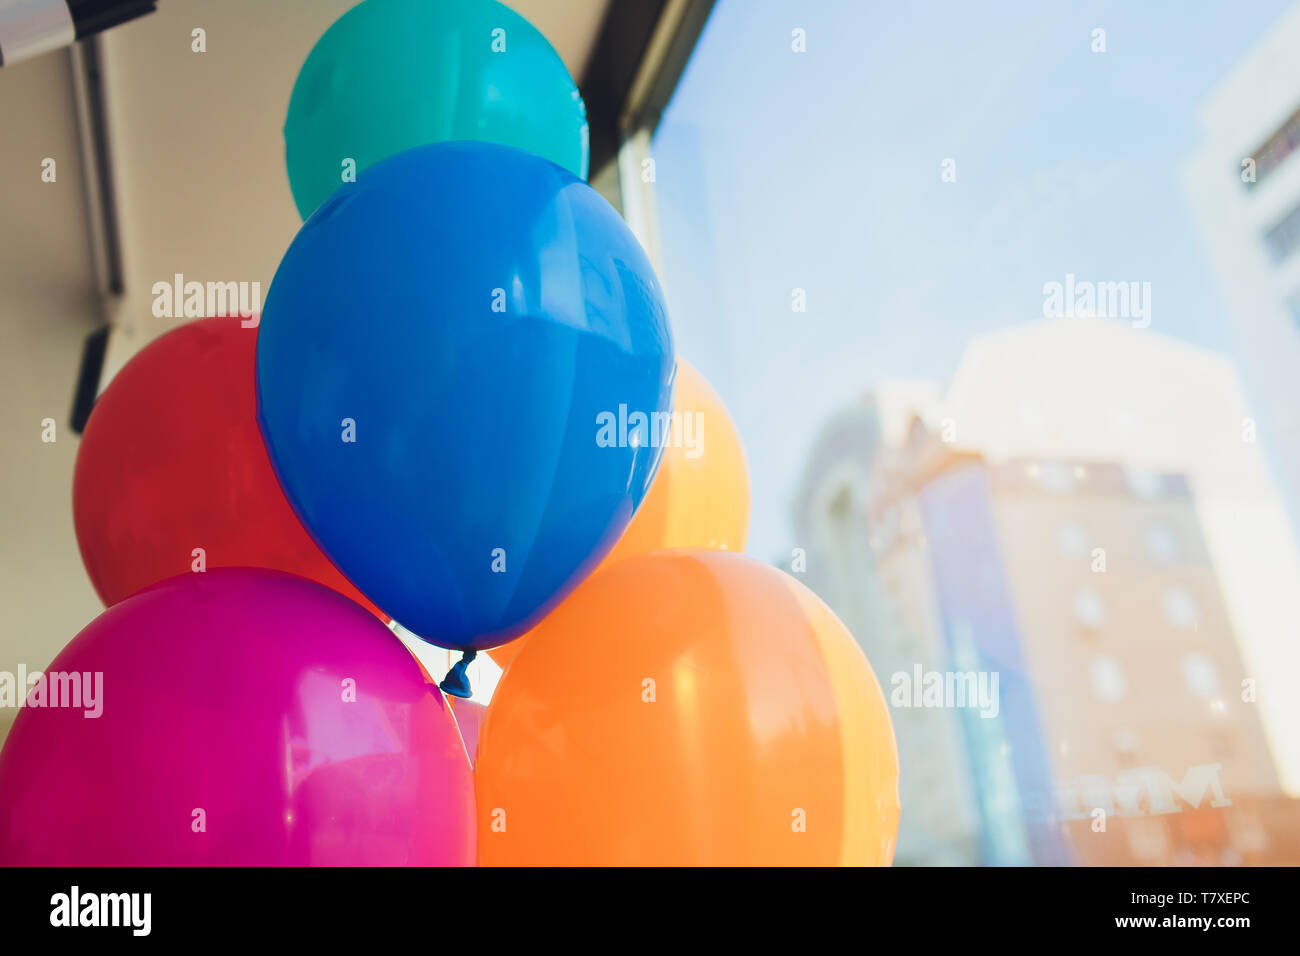 Abstract blurred party decoration with balloon, entertainment lifestyle concept - Stock Image